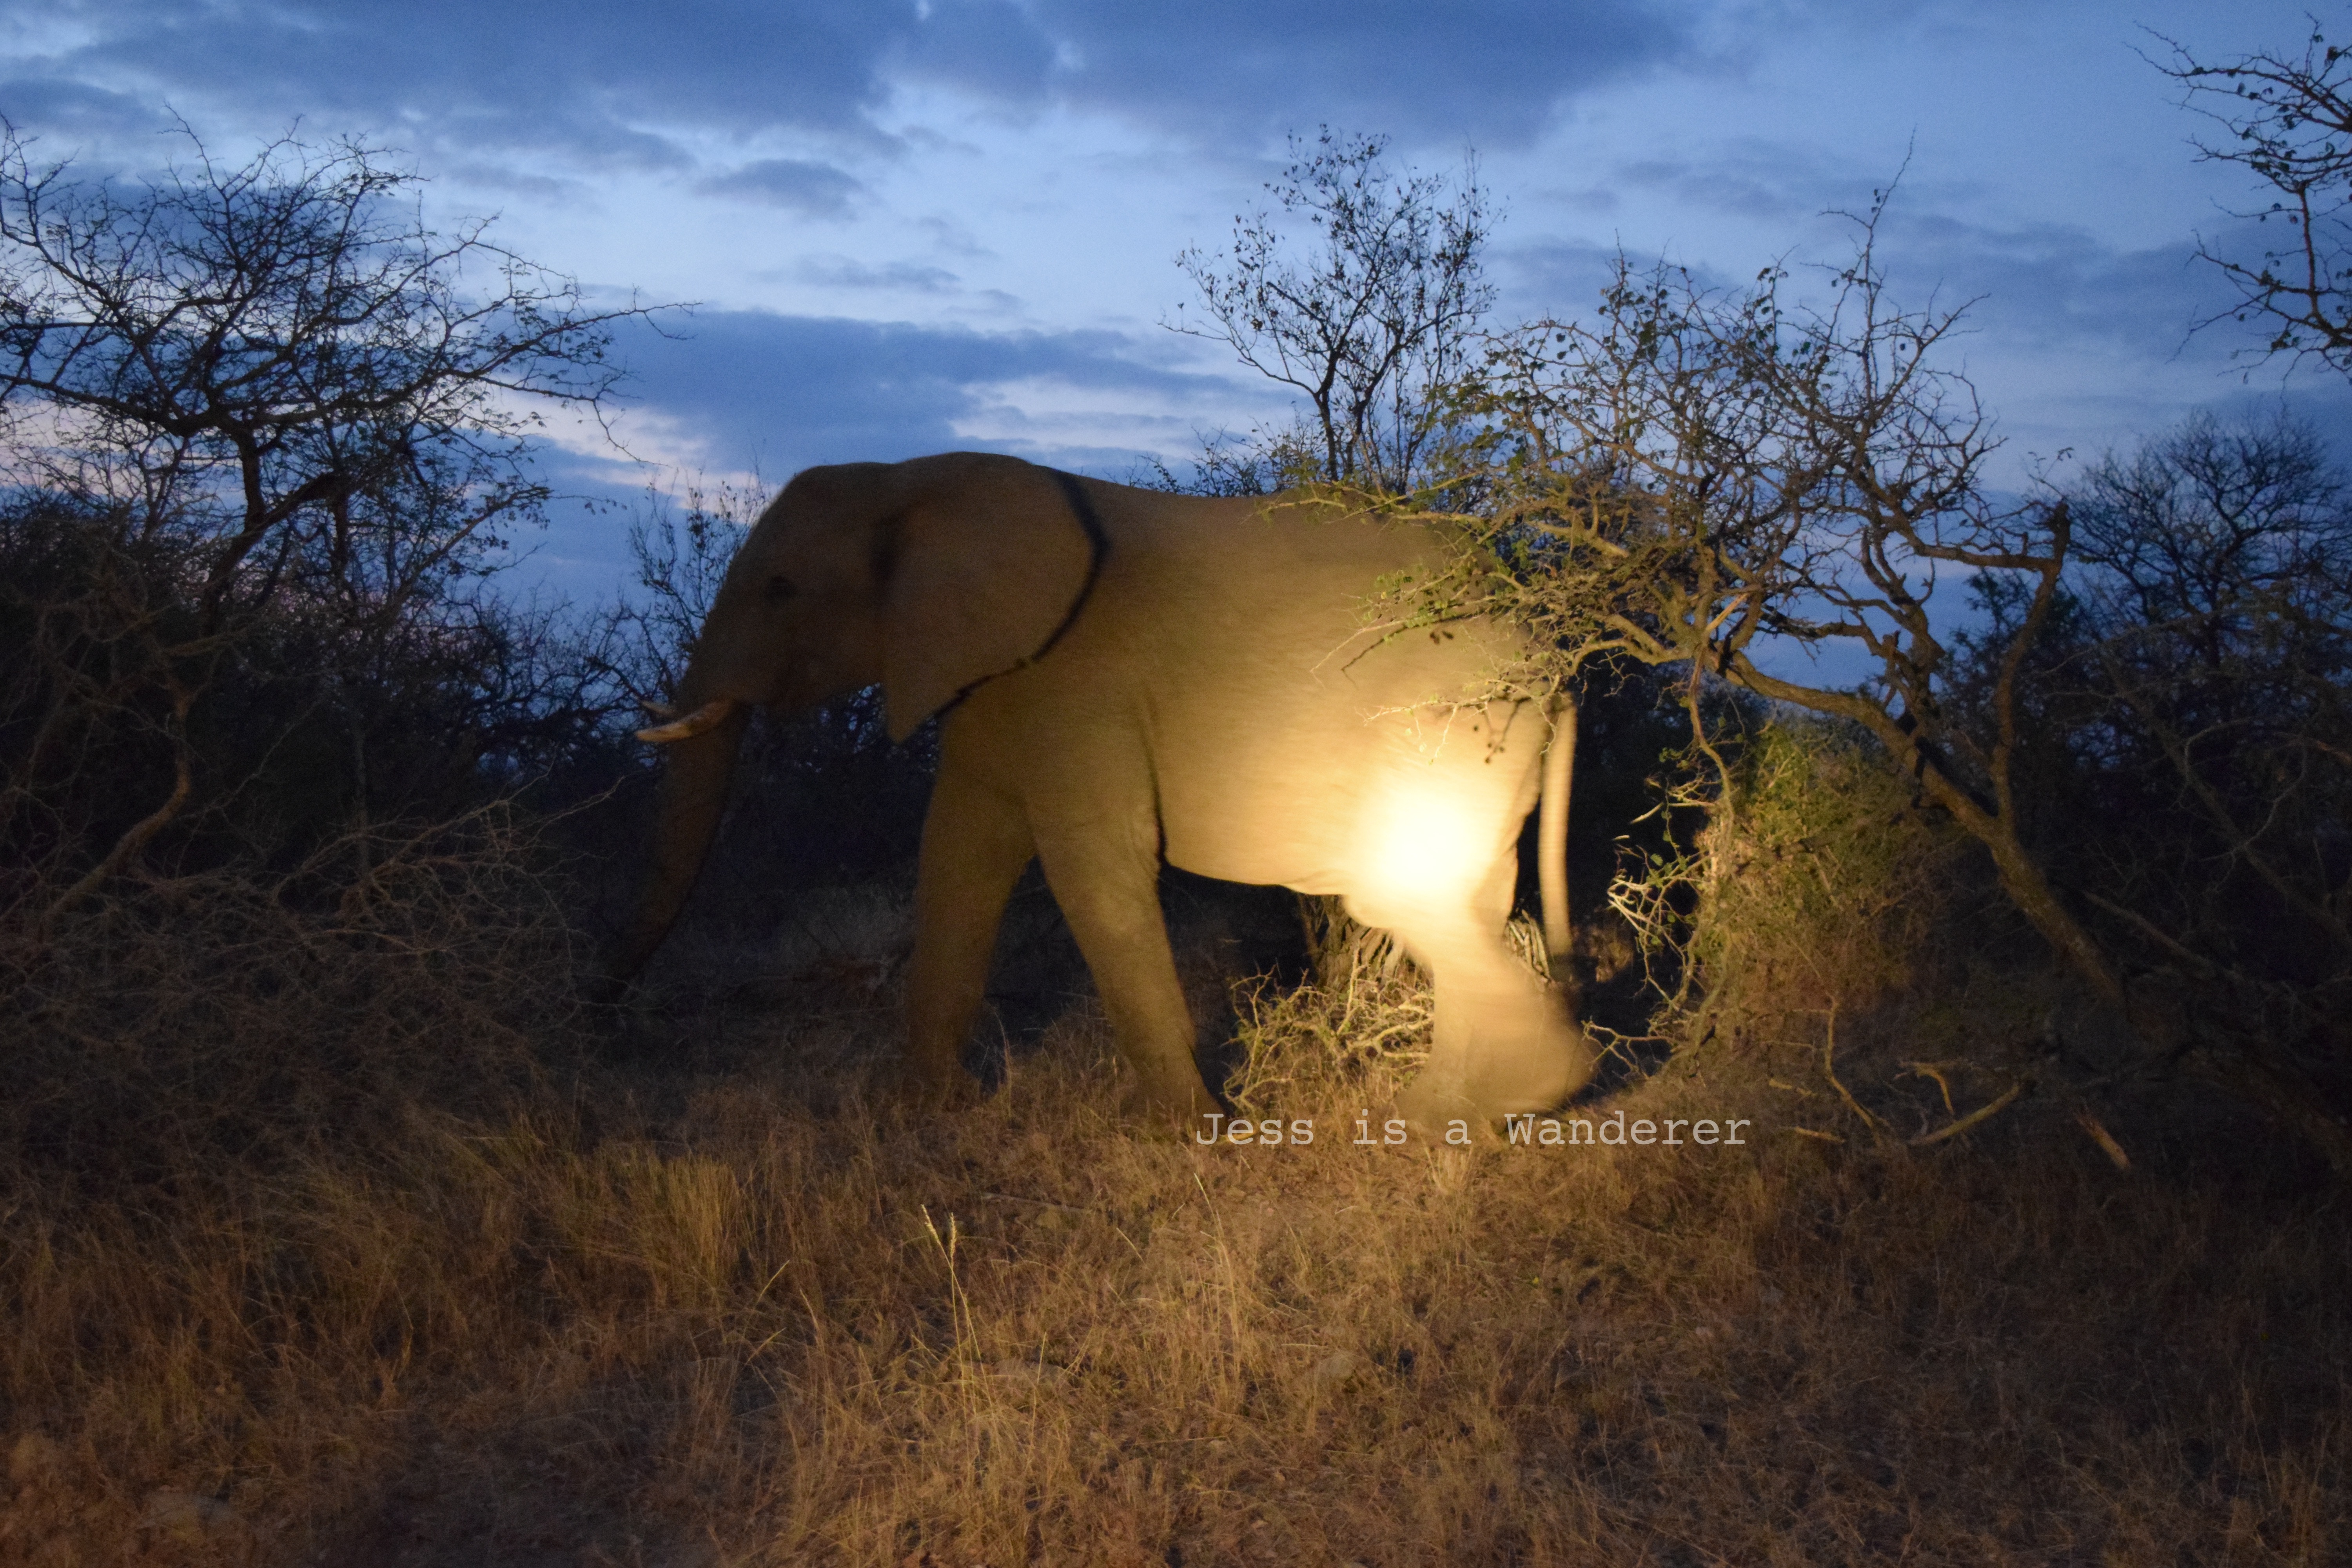 Early Morning Elephant Watching